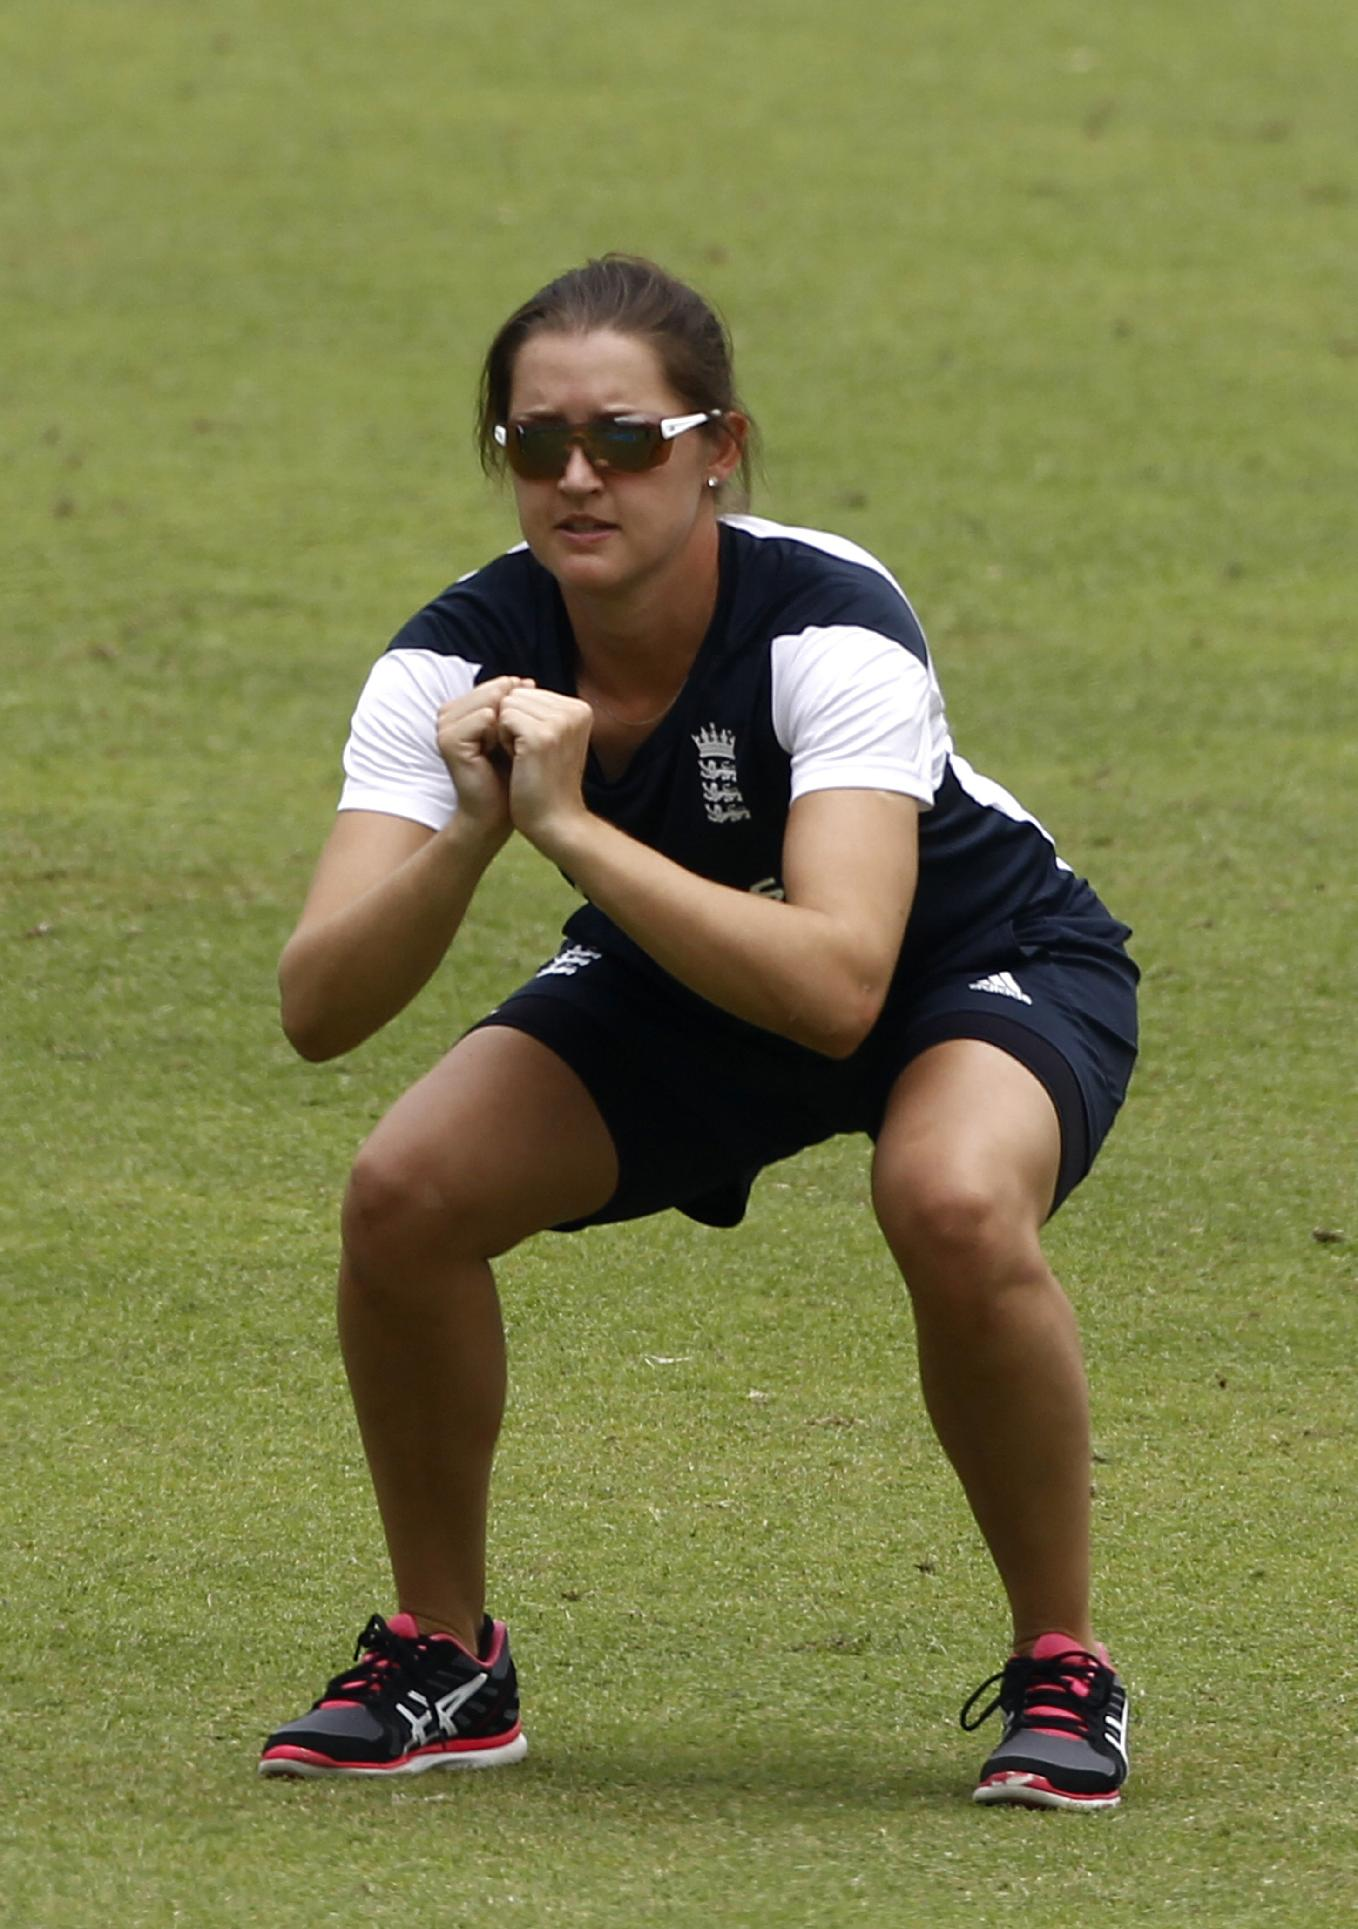 England women's team cricket player Sarah Taylor stretches during a training session ahead of their ICC Twenty20 Cricket World Cup final match against Australia in Dhaka, Bangladesh, Saturday, April 5, 2014